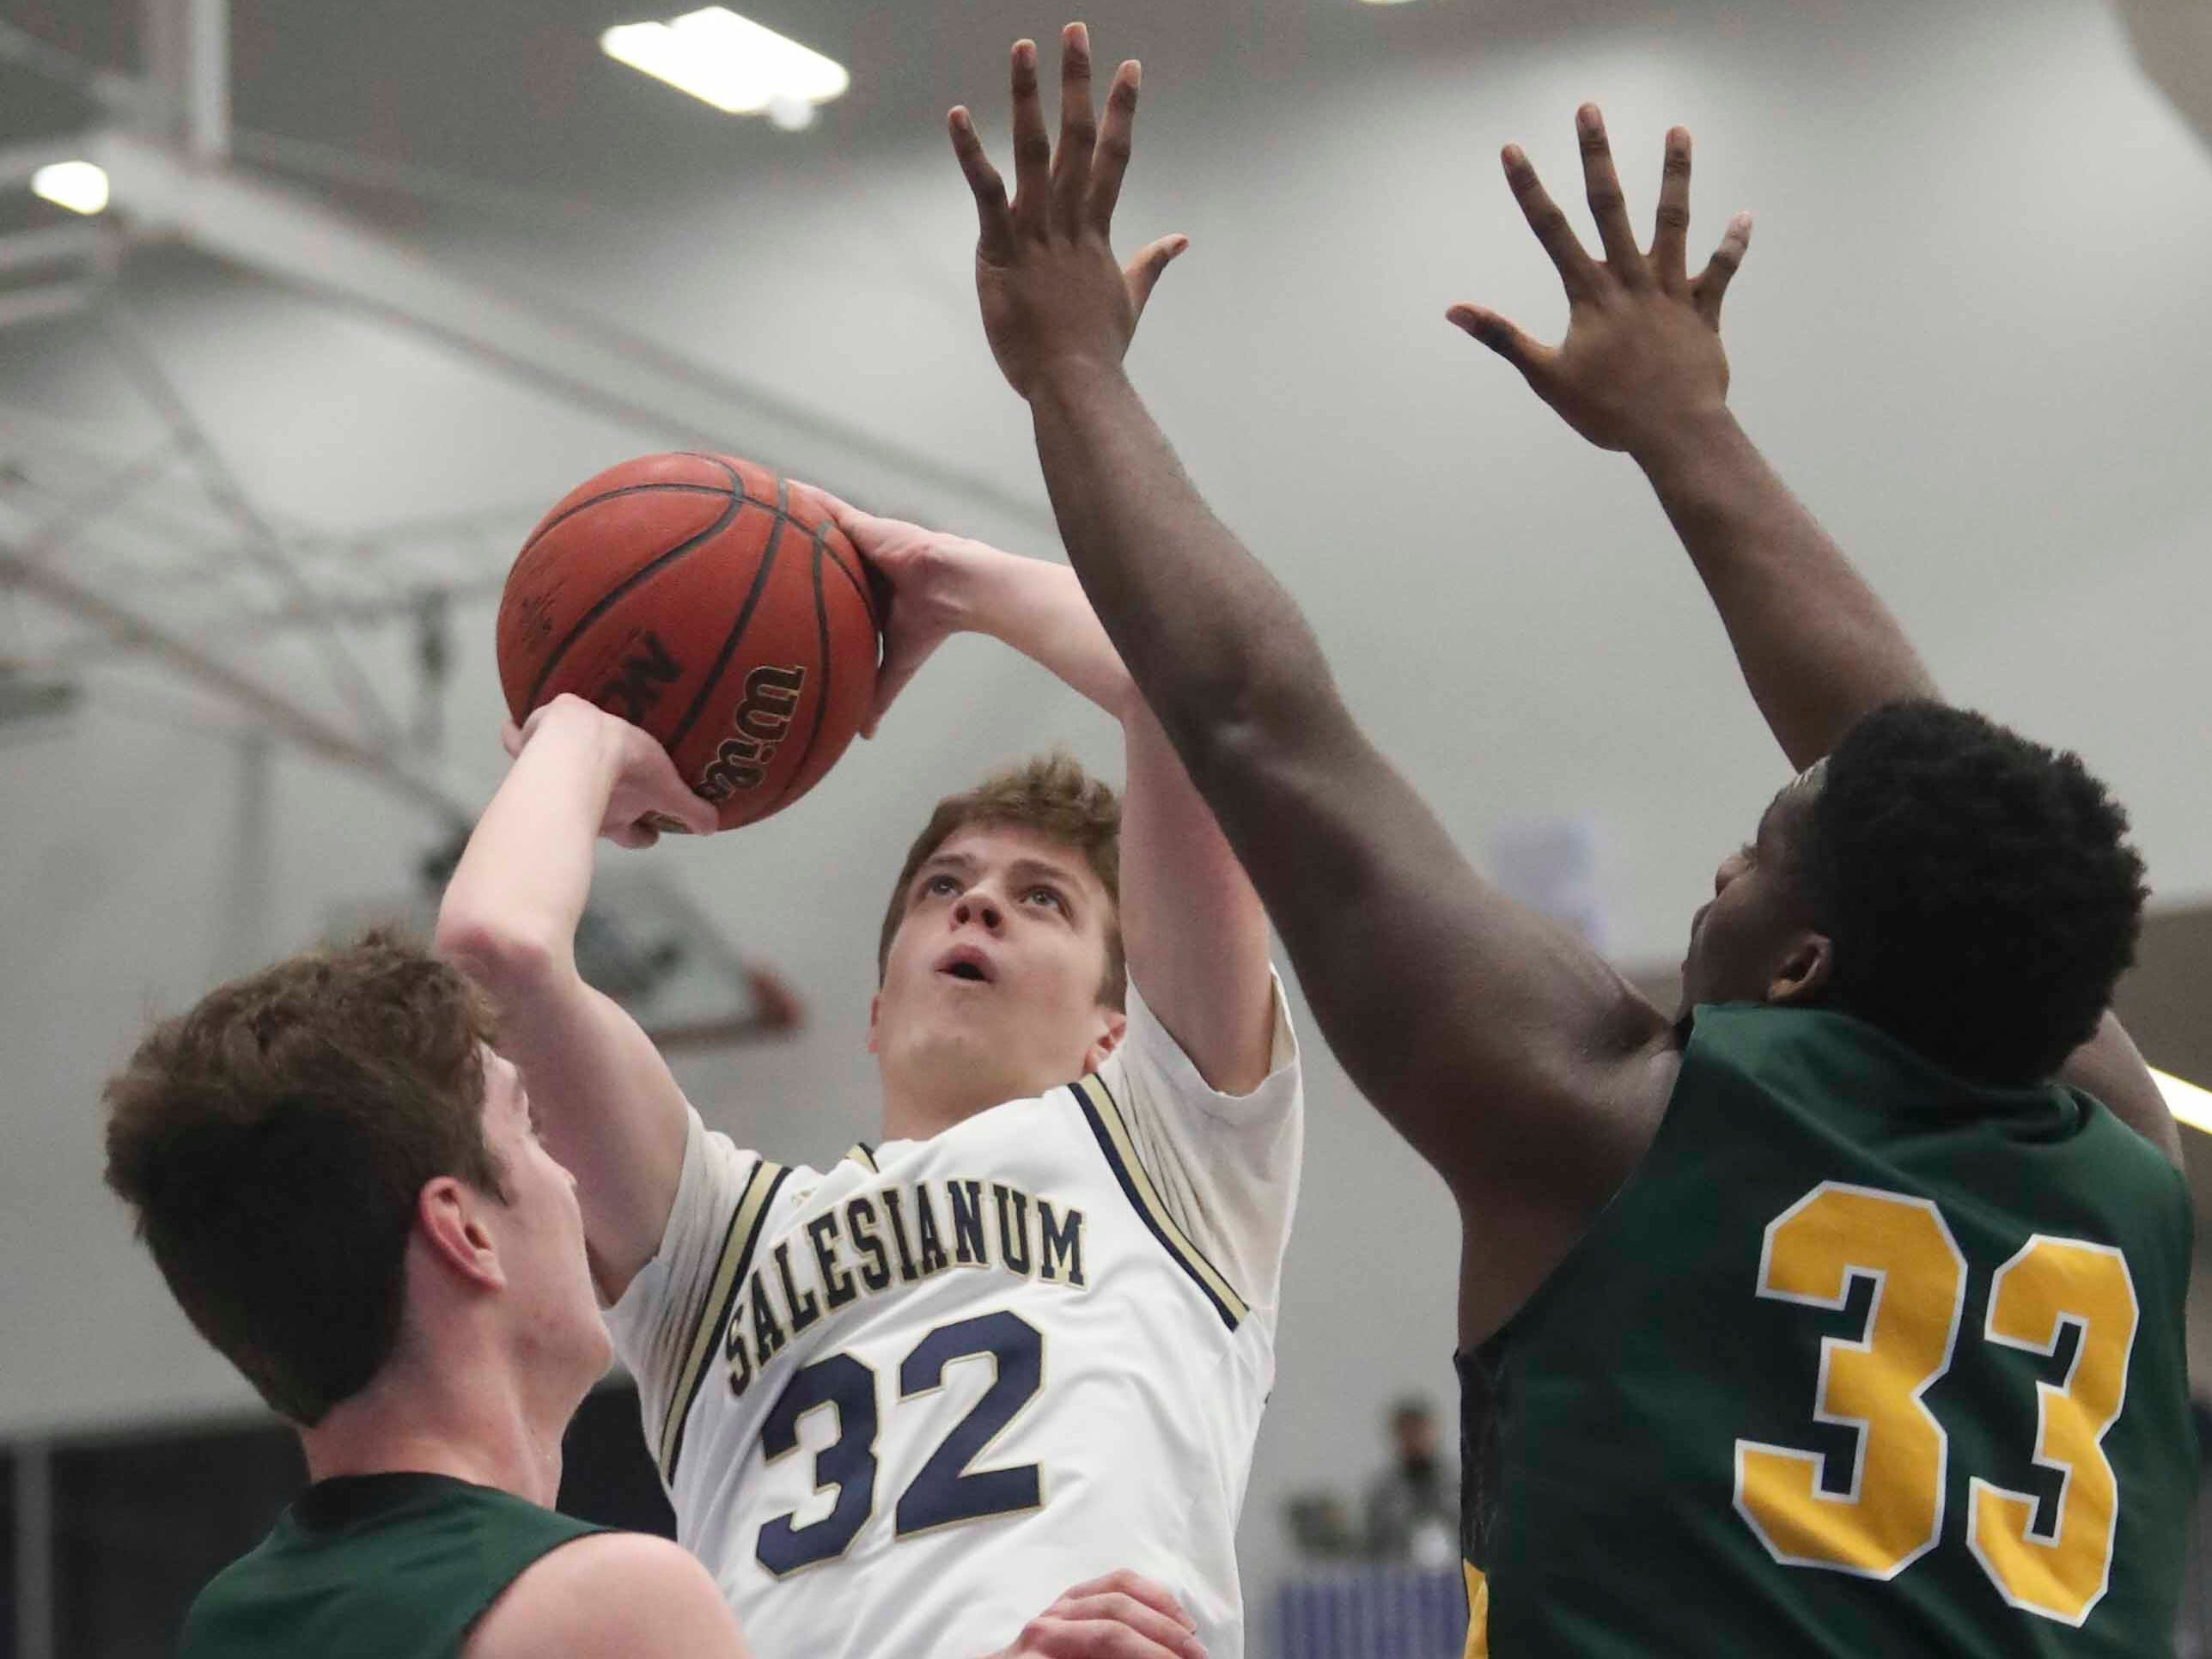 Salesianum's Thomas Montooth shoots against St. Mark's Victor Marcelo (left) and Devon Jones in the SL24 Memorial Basketball Classic at the 76ers Fieldhouse in Wilmington Friday.